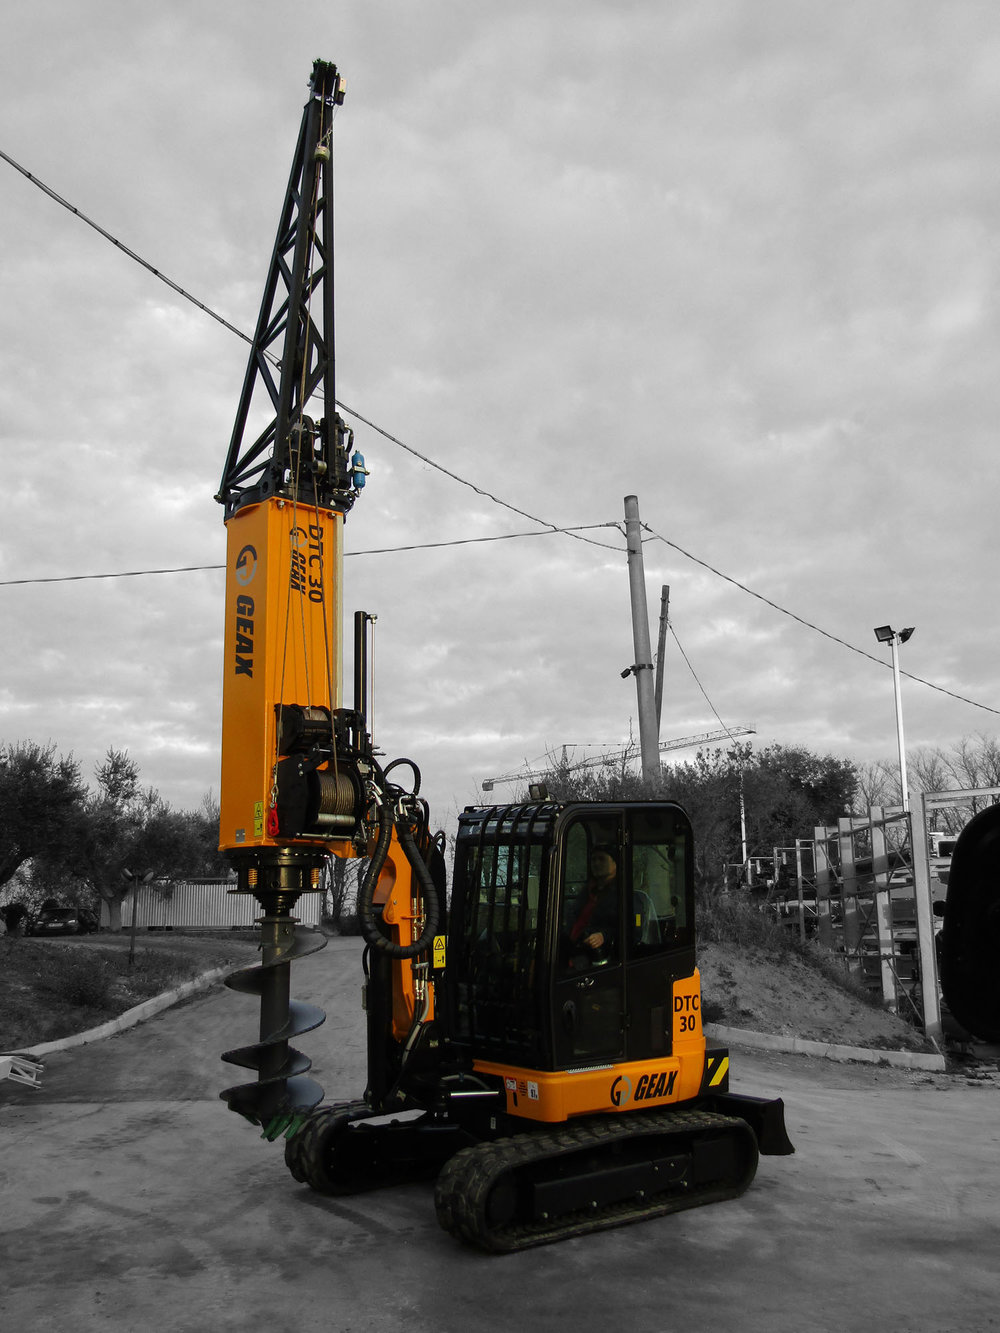 GEAX DTC30       Piling Rig Mounted on JCB 67C-1 EXCAVTOR with   Tier 4F Engine   GEAX ~  2017   Hours: New